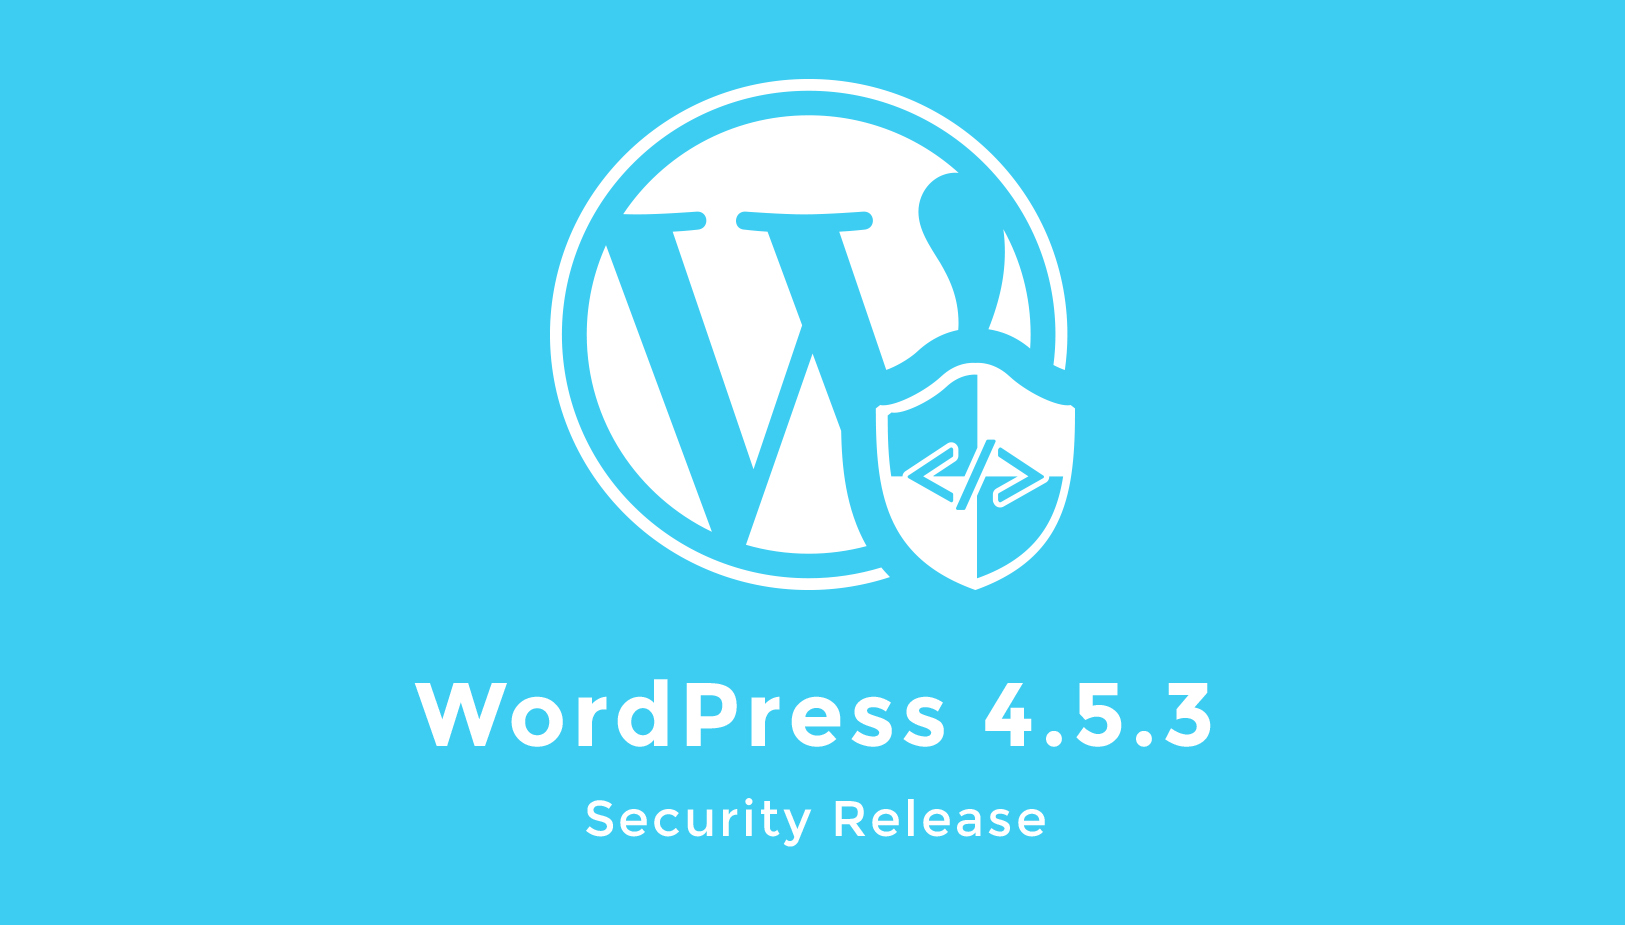 WordPress 4.5.3 Security release fixes some major issues